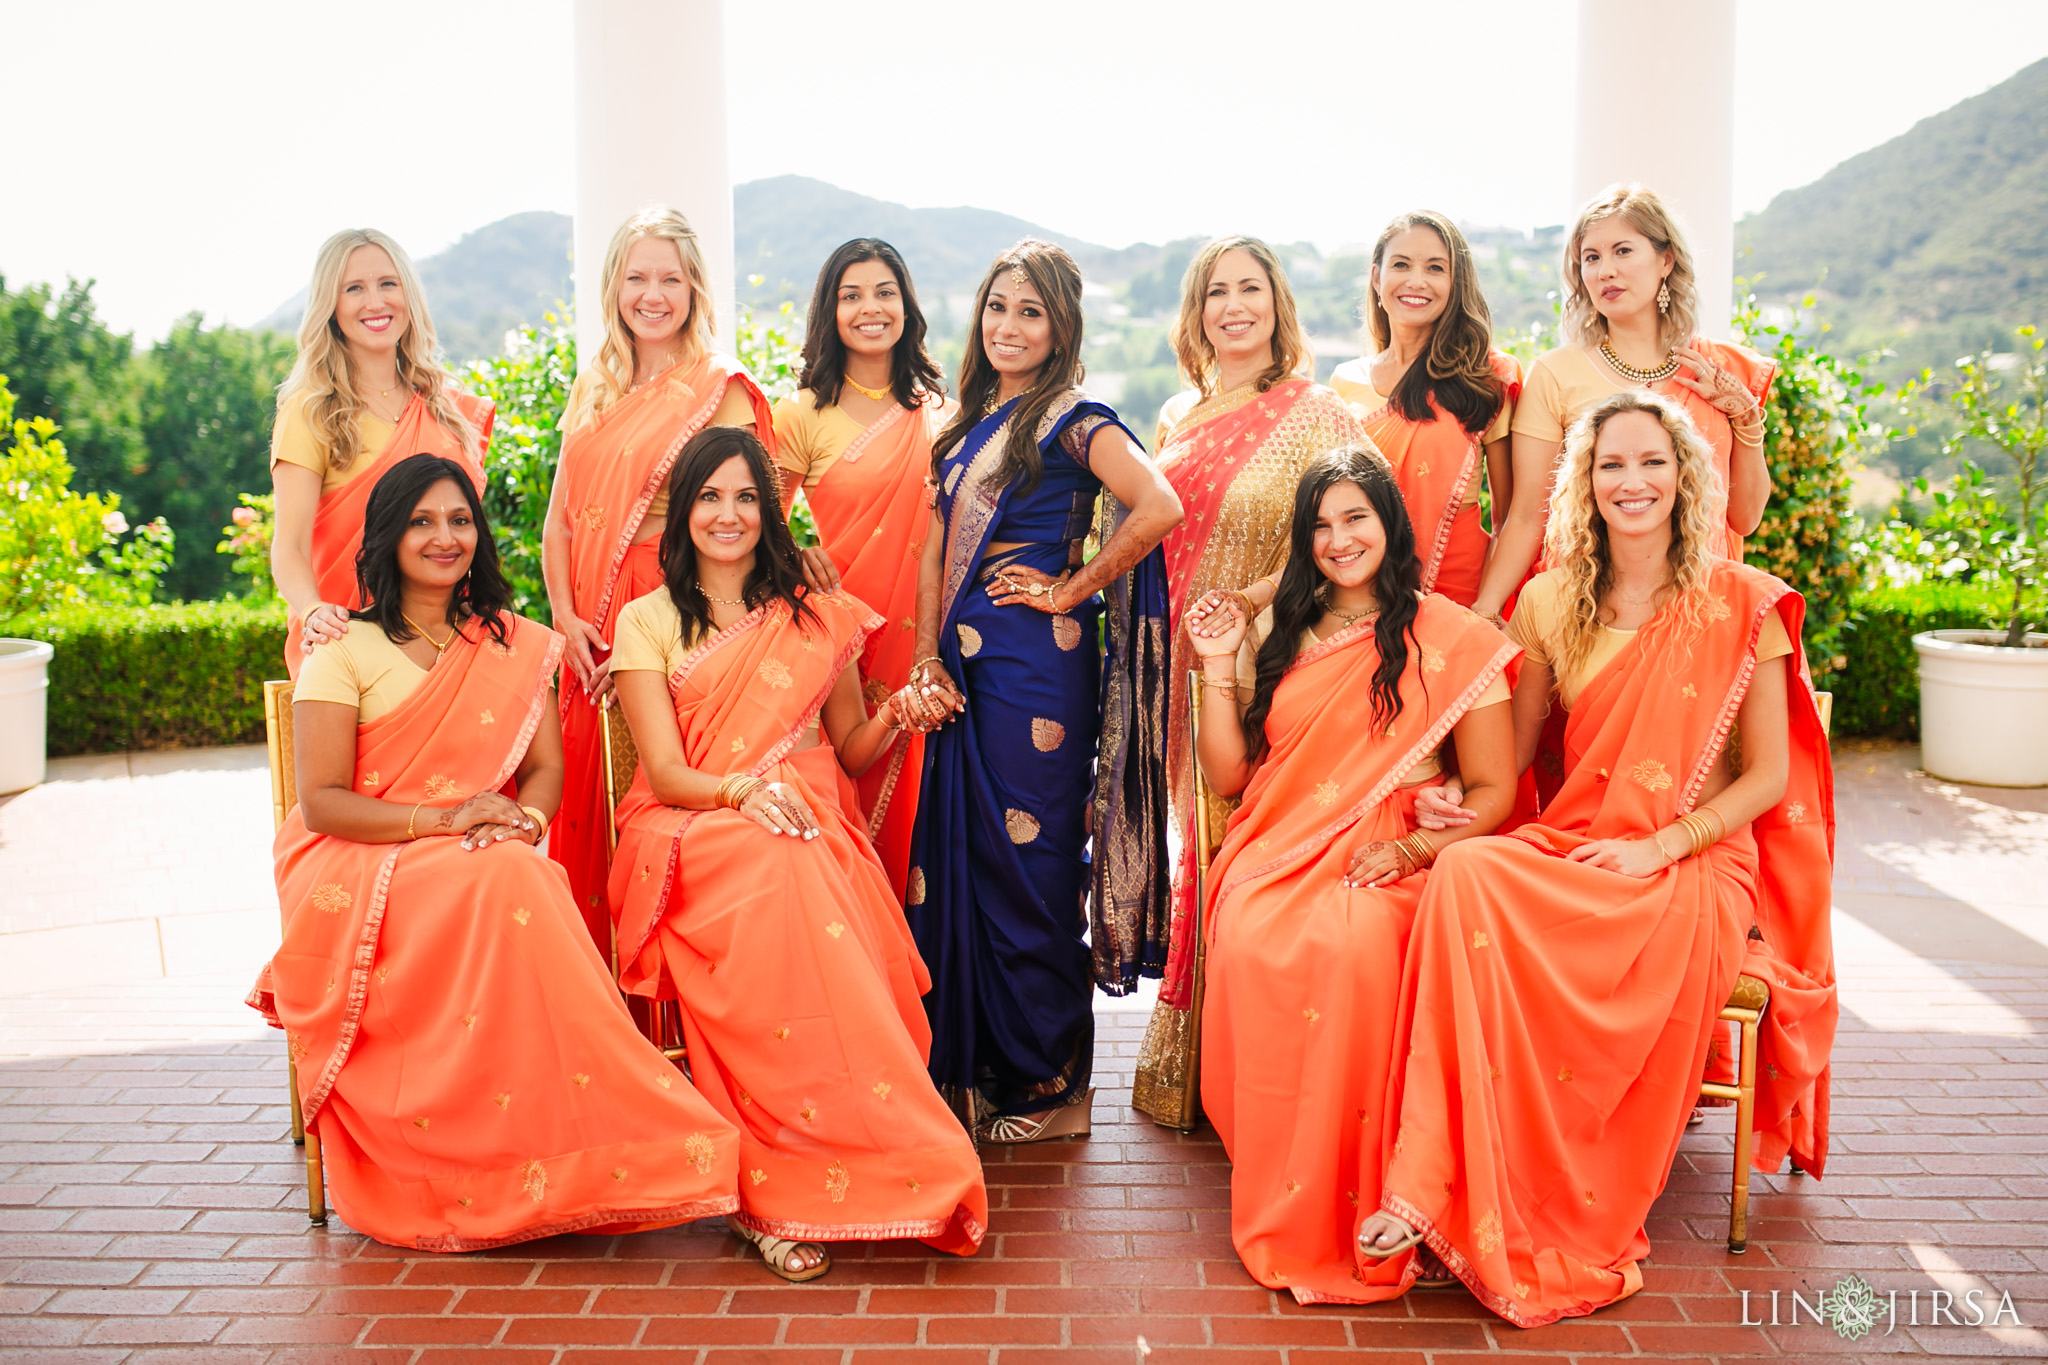 006 sherwood country club indian bridesmaids wedding photography